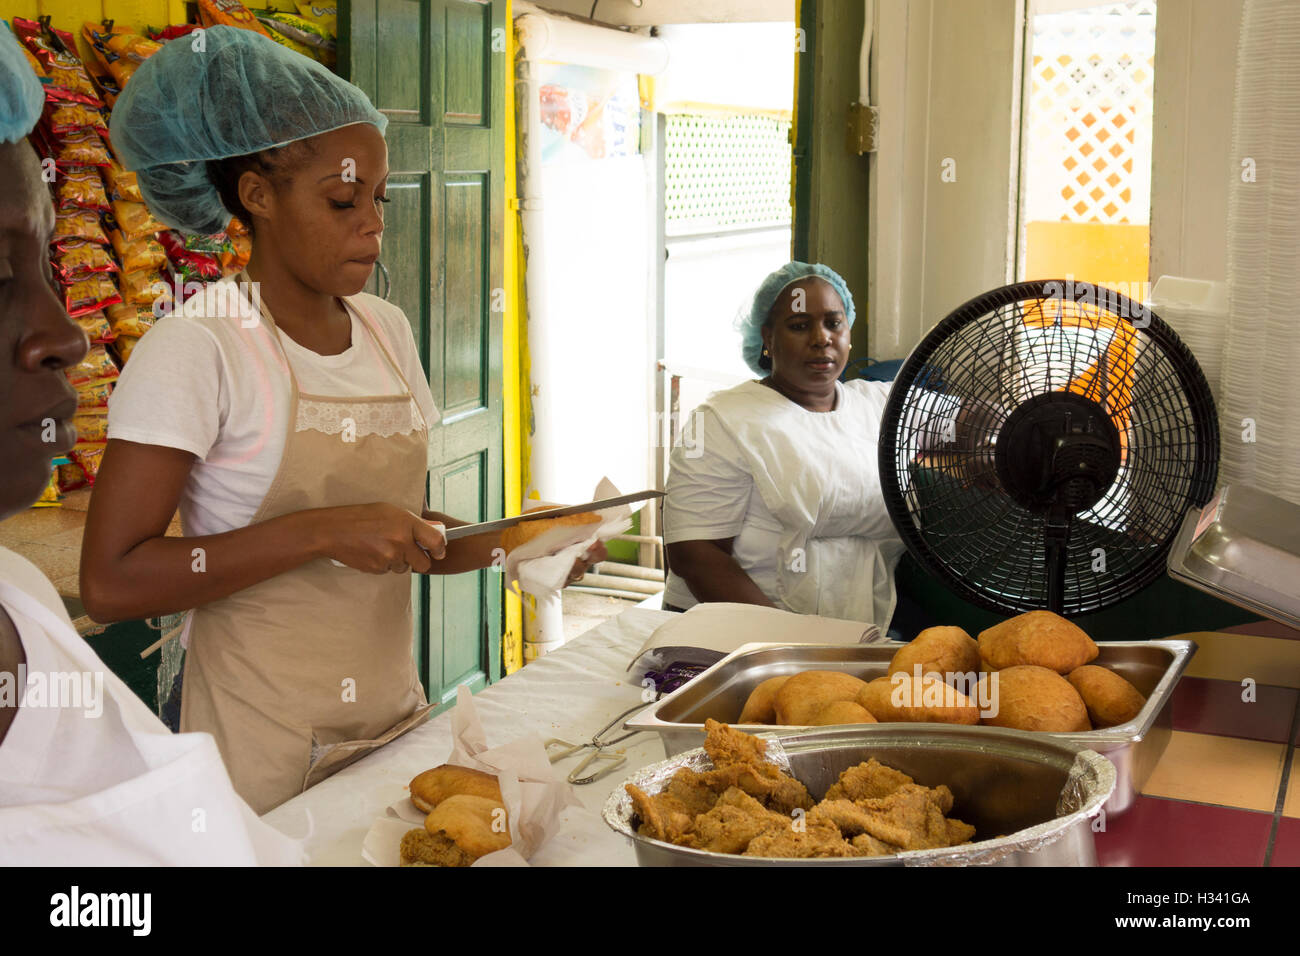 woman makes traditional Trinidad dish of Shark and Bake fish sandwich at food snack stall at Maracas Beach Trinidad - Stock Image